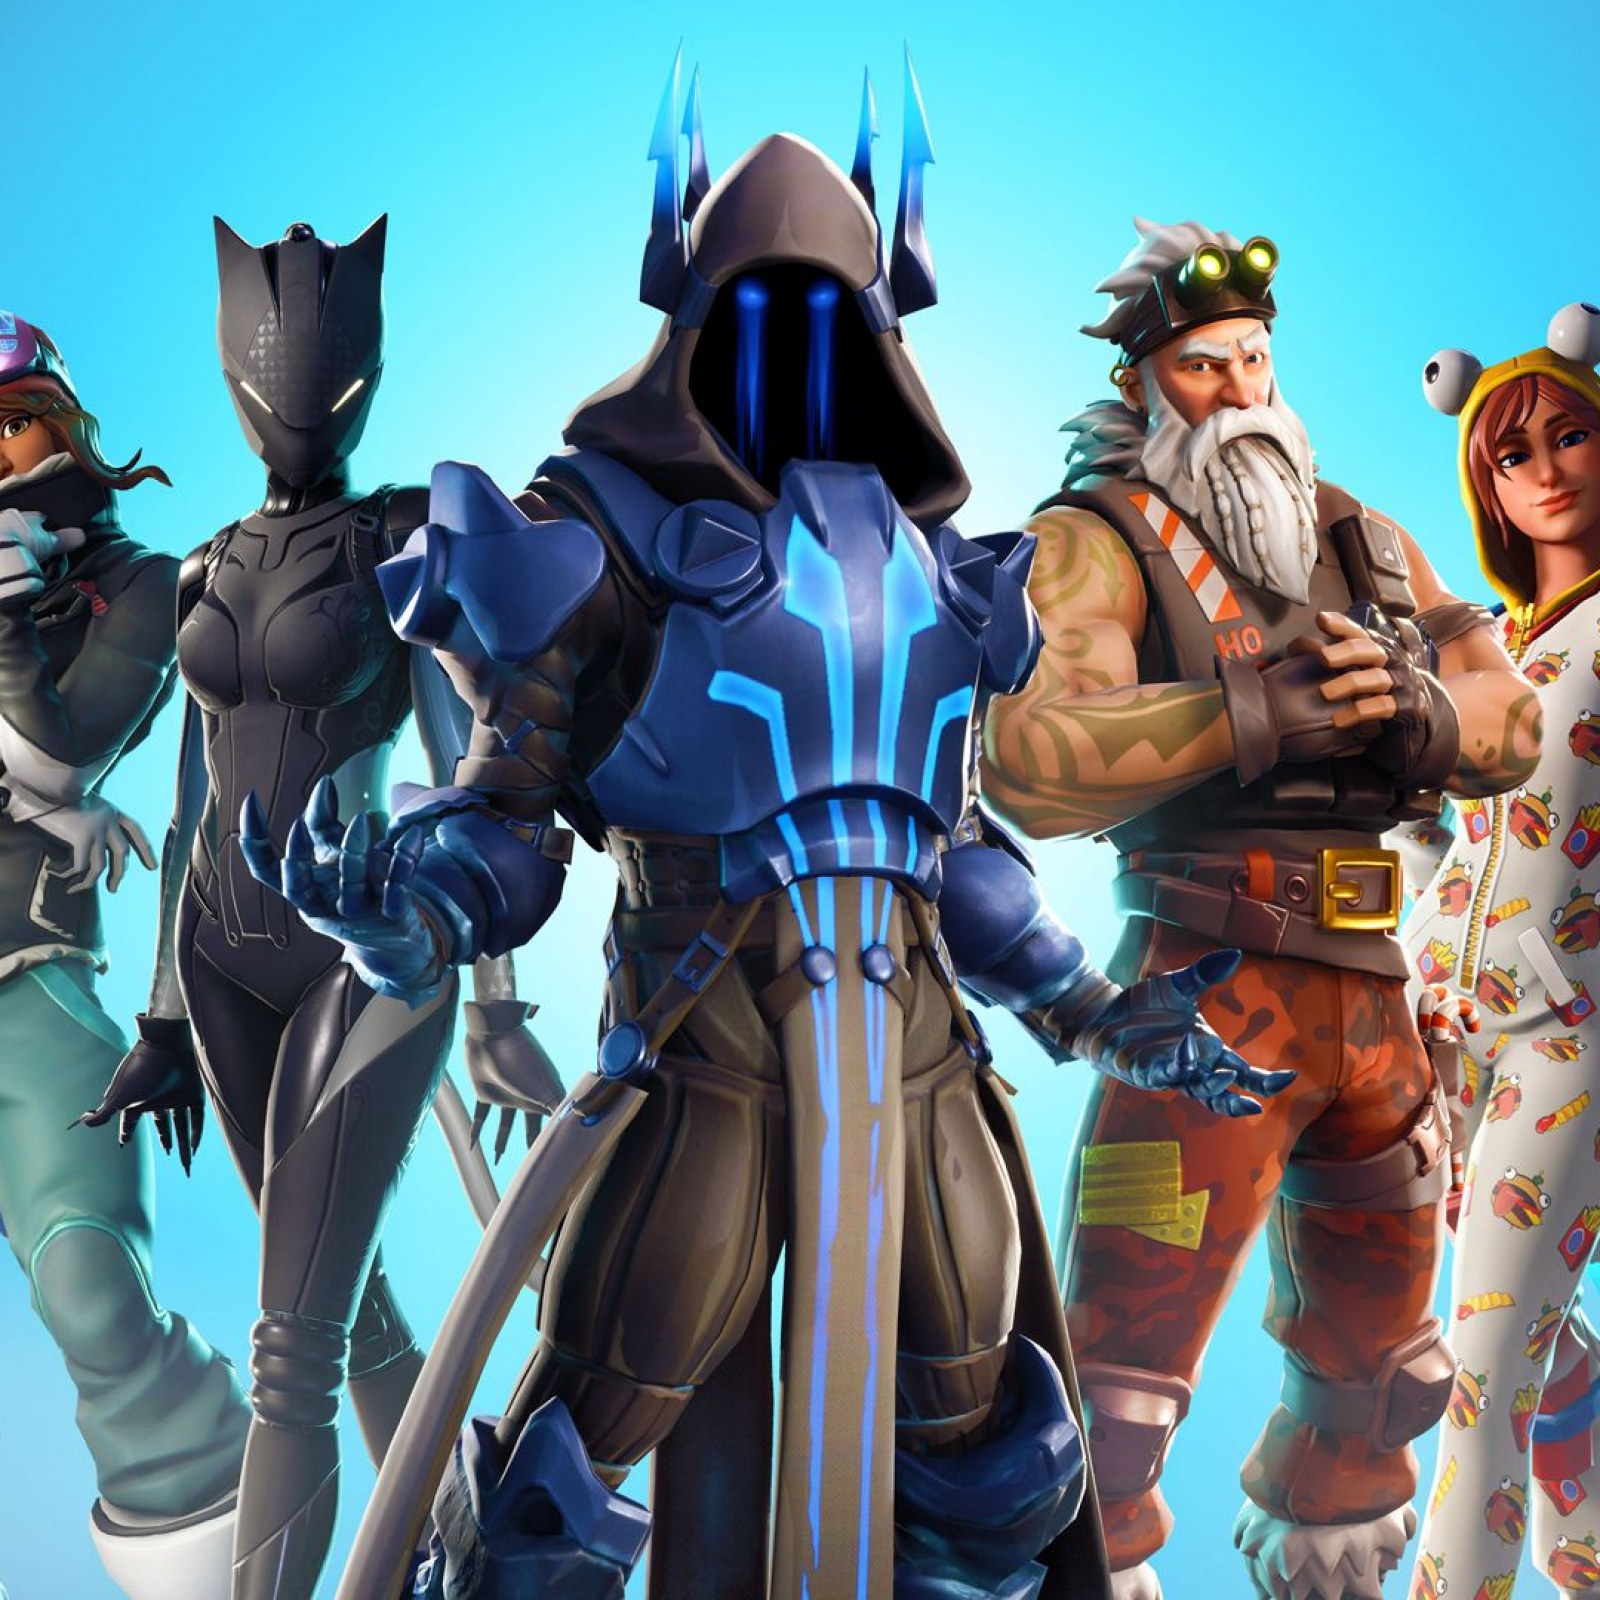 Does Fortnite Have A Prison Fortnite Prisoner Skin Key Locations How To Unlock All 4 Stages